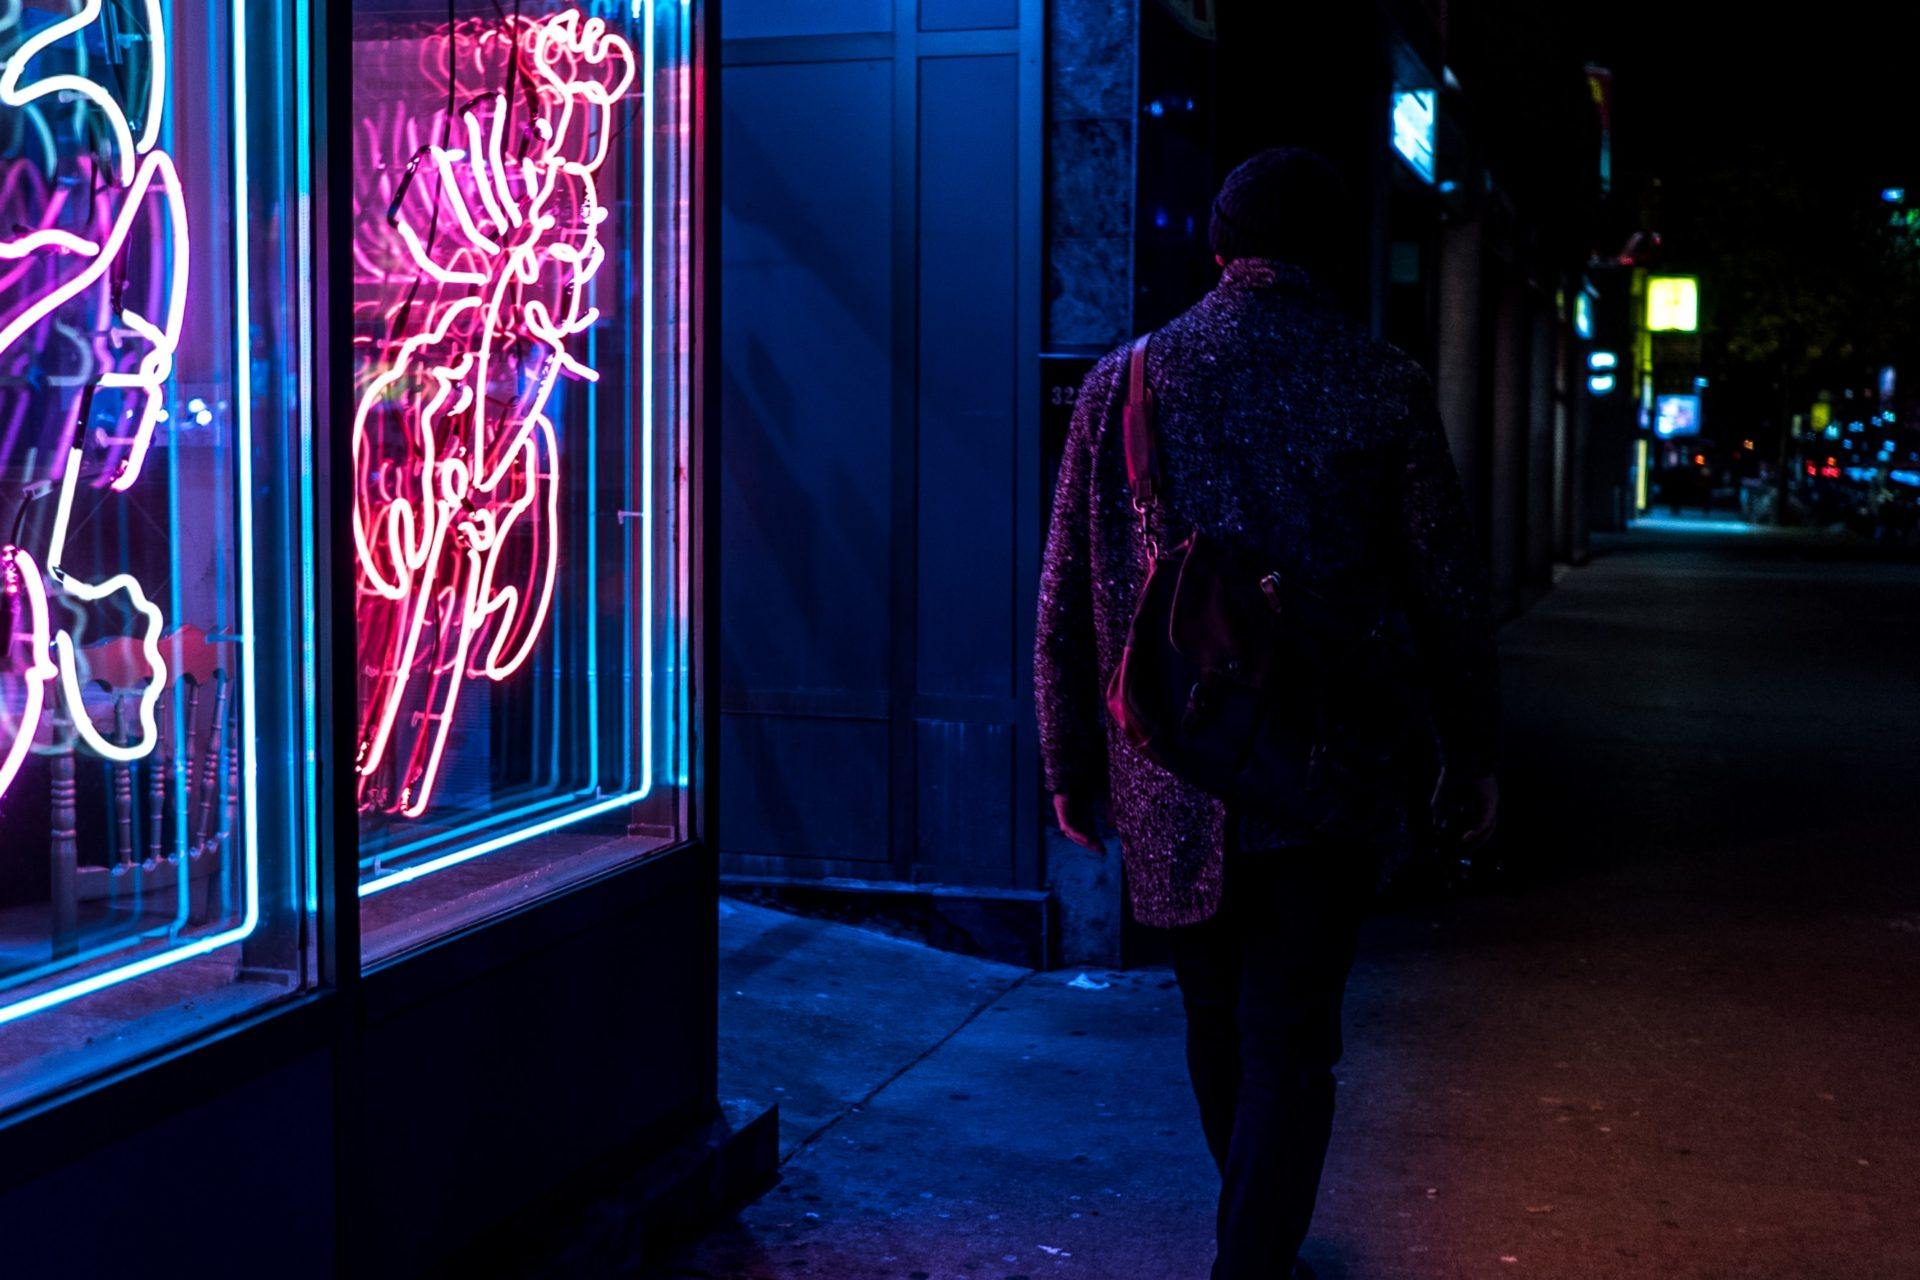 photo of person outside a dimly lit bar at night